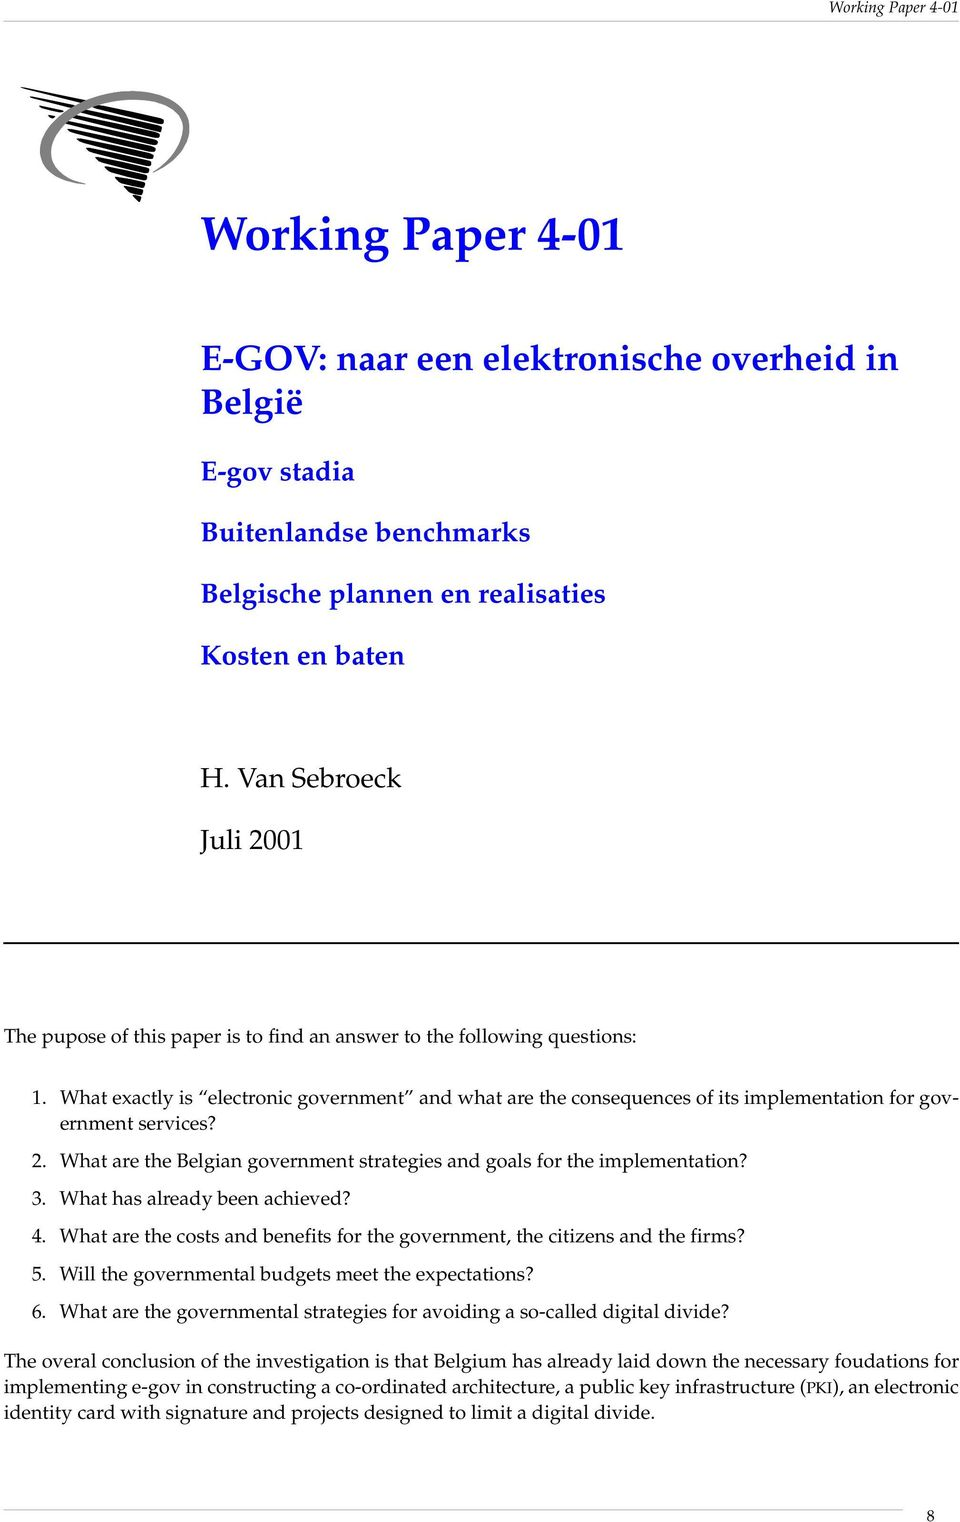 What exactly is electronic government and what are the consequences of its implementation for government services? 2. What are the Belgian government strategies and goals for the implementation? 3.